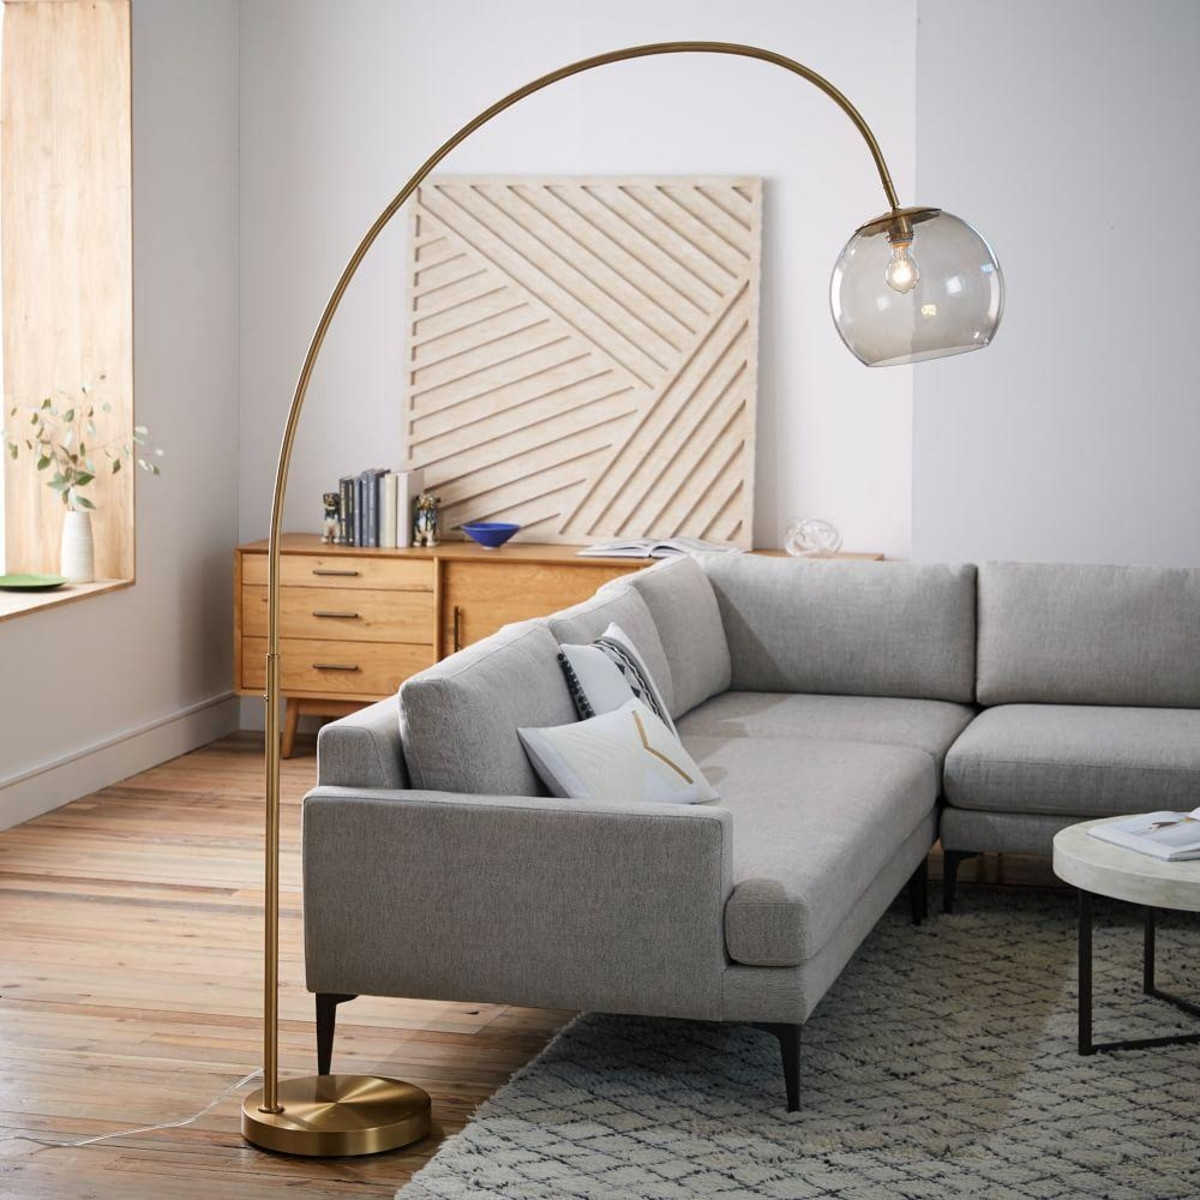 Acrylic Living Room Floor Lamps — S3Cparis Lamps Design : Fabulous Intended For Small Living Room Table Lamps (View 7 of 15)